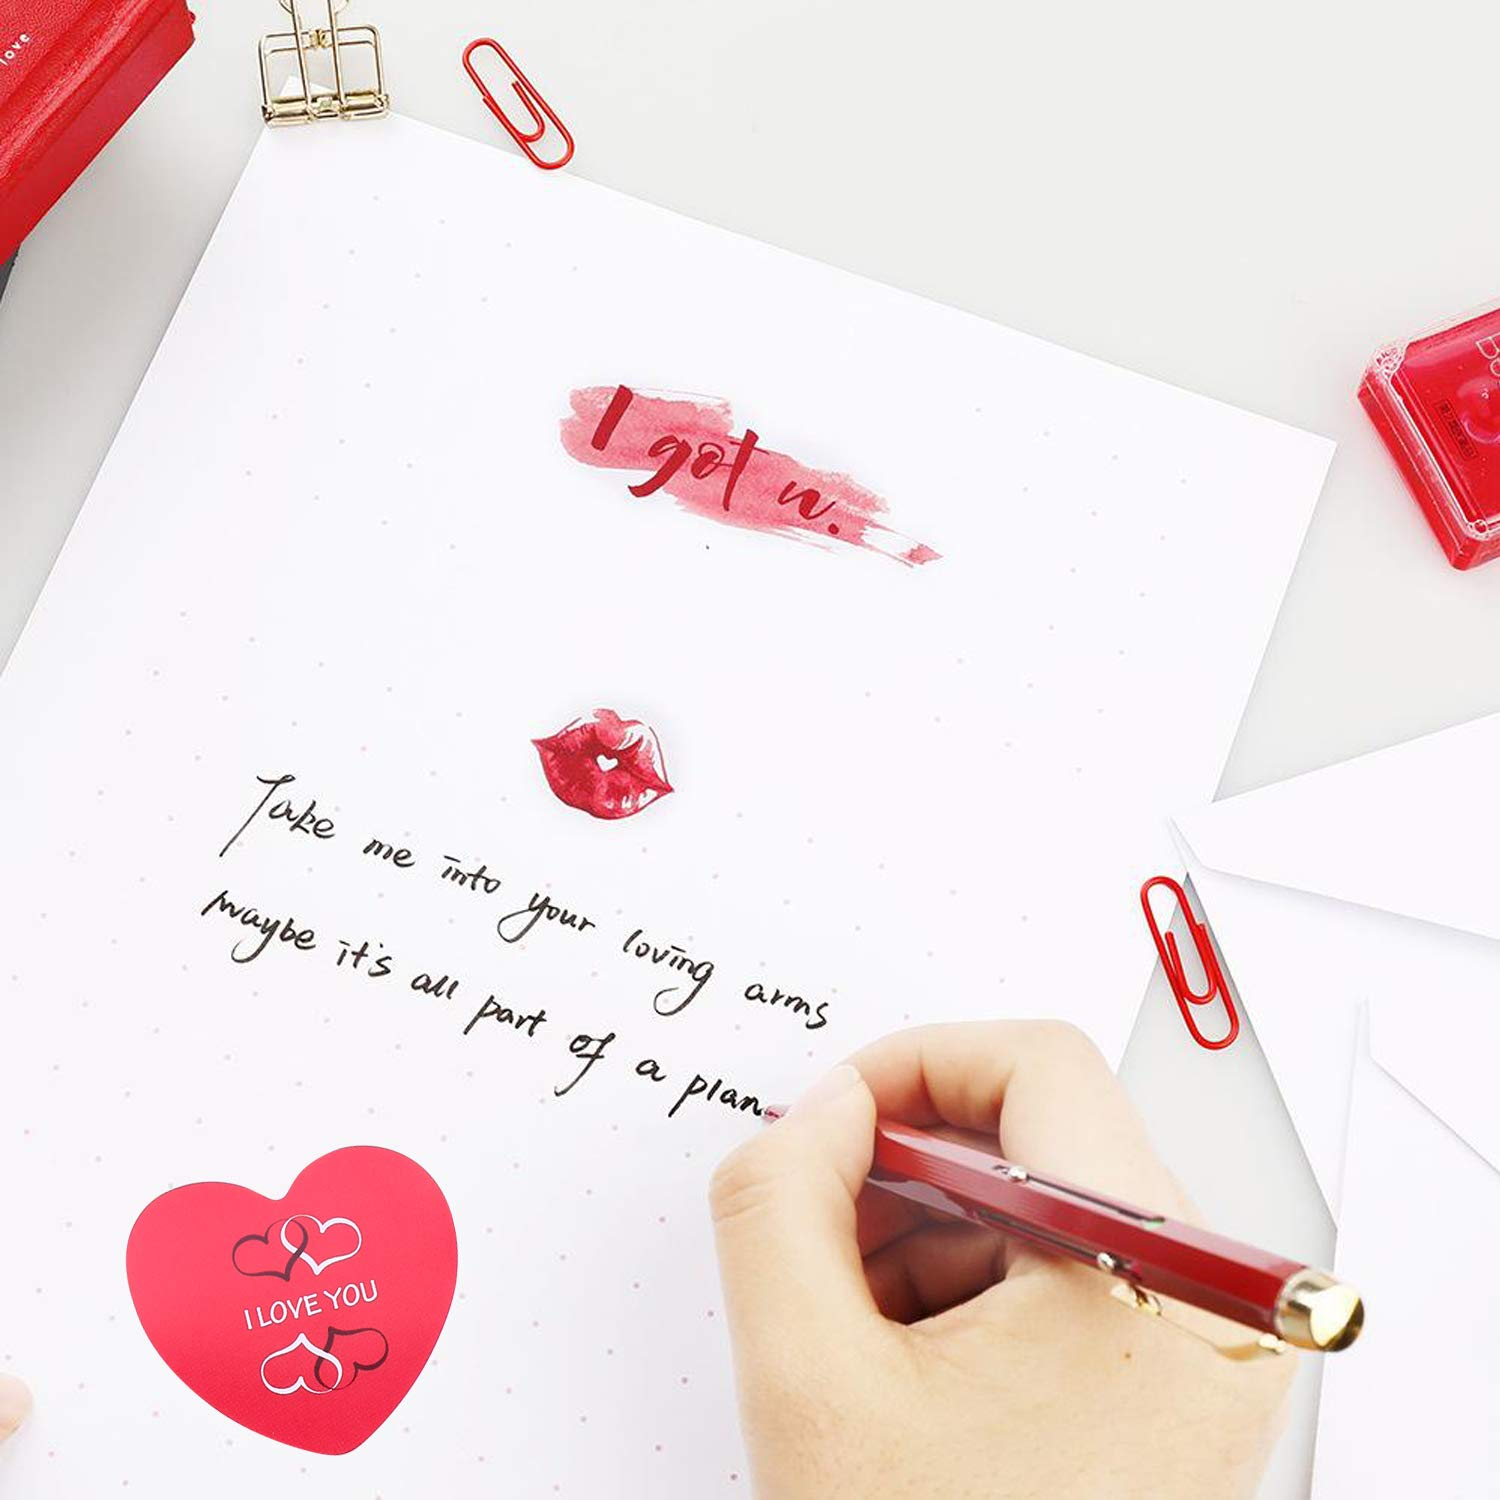 Konsait 720PCS Valentine/'s Day Heart Sticker Rolls Love Decorative Sticker for Kids Envelopes gift Cards Craft Scrapbooking Bags Envelope Seals Great Party Favors Gift Prize Class Rewards Award Praise